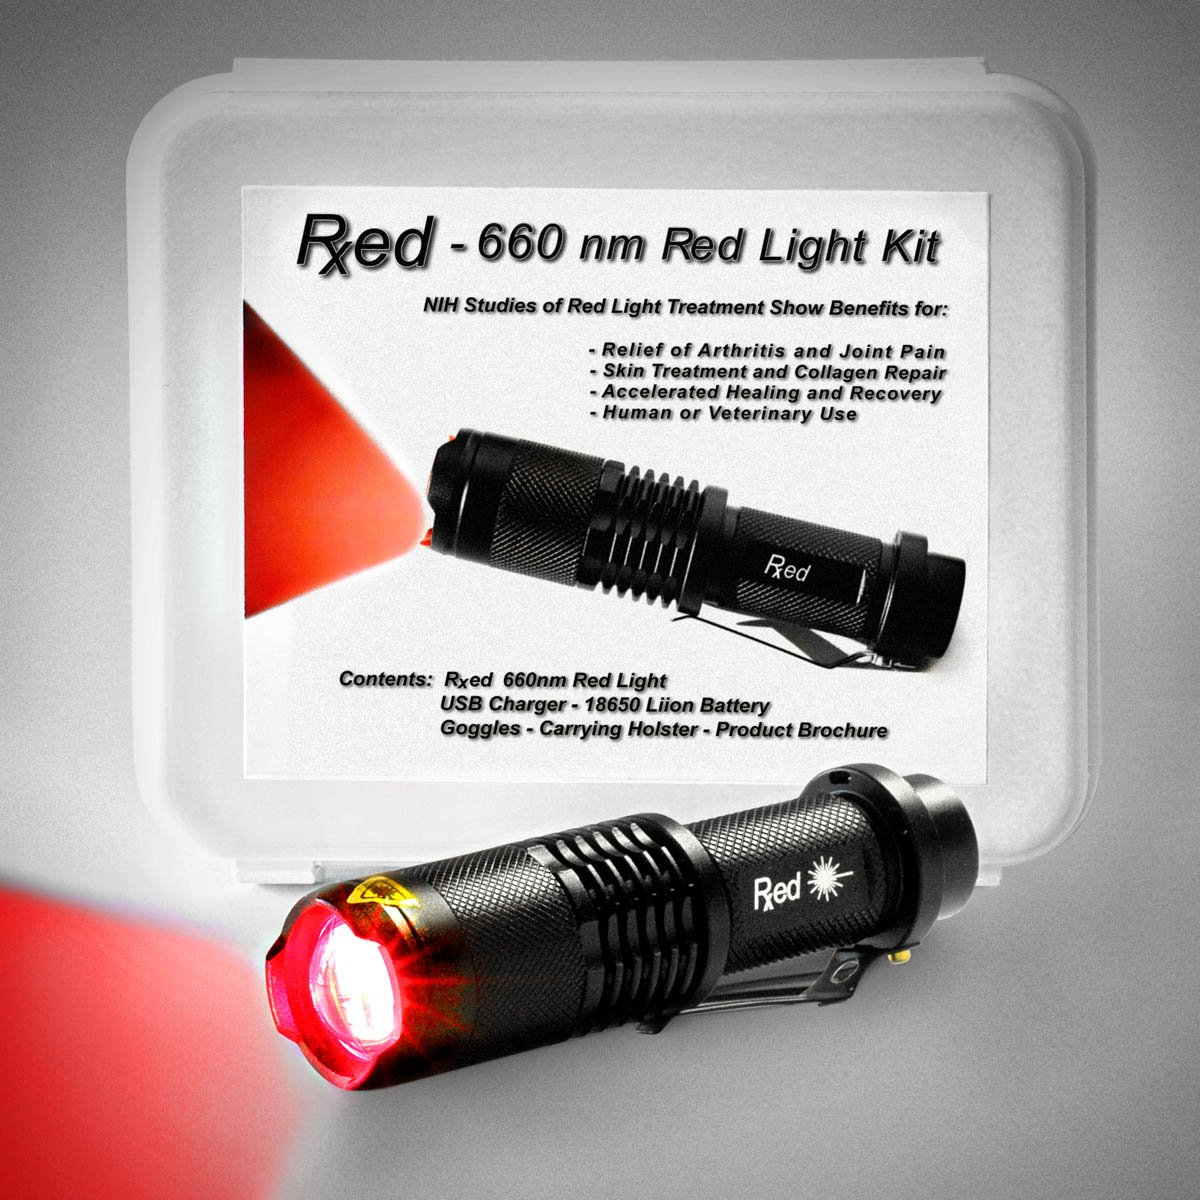 RxED - 660nm Red Light Kit - Years of NIH Studies Show Benefits of Red Light Therapy in Relieving Joint Pain and Swelling, Improving Skin Texture and Facilitating Healing and Treatment of Injuries by Rxed